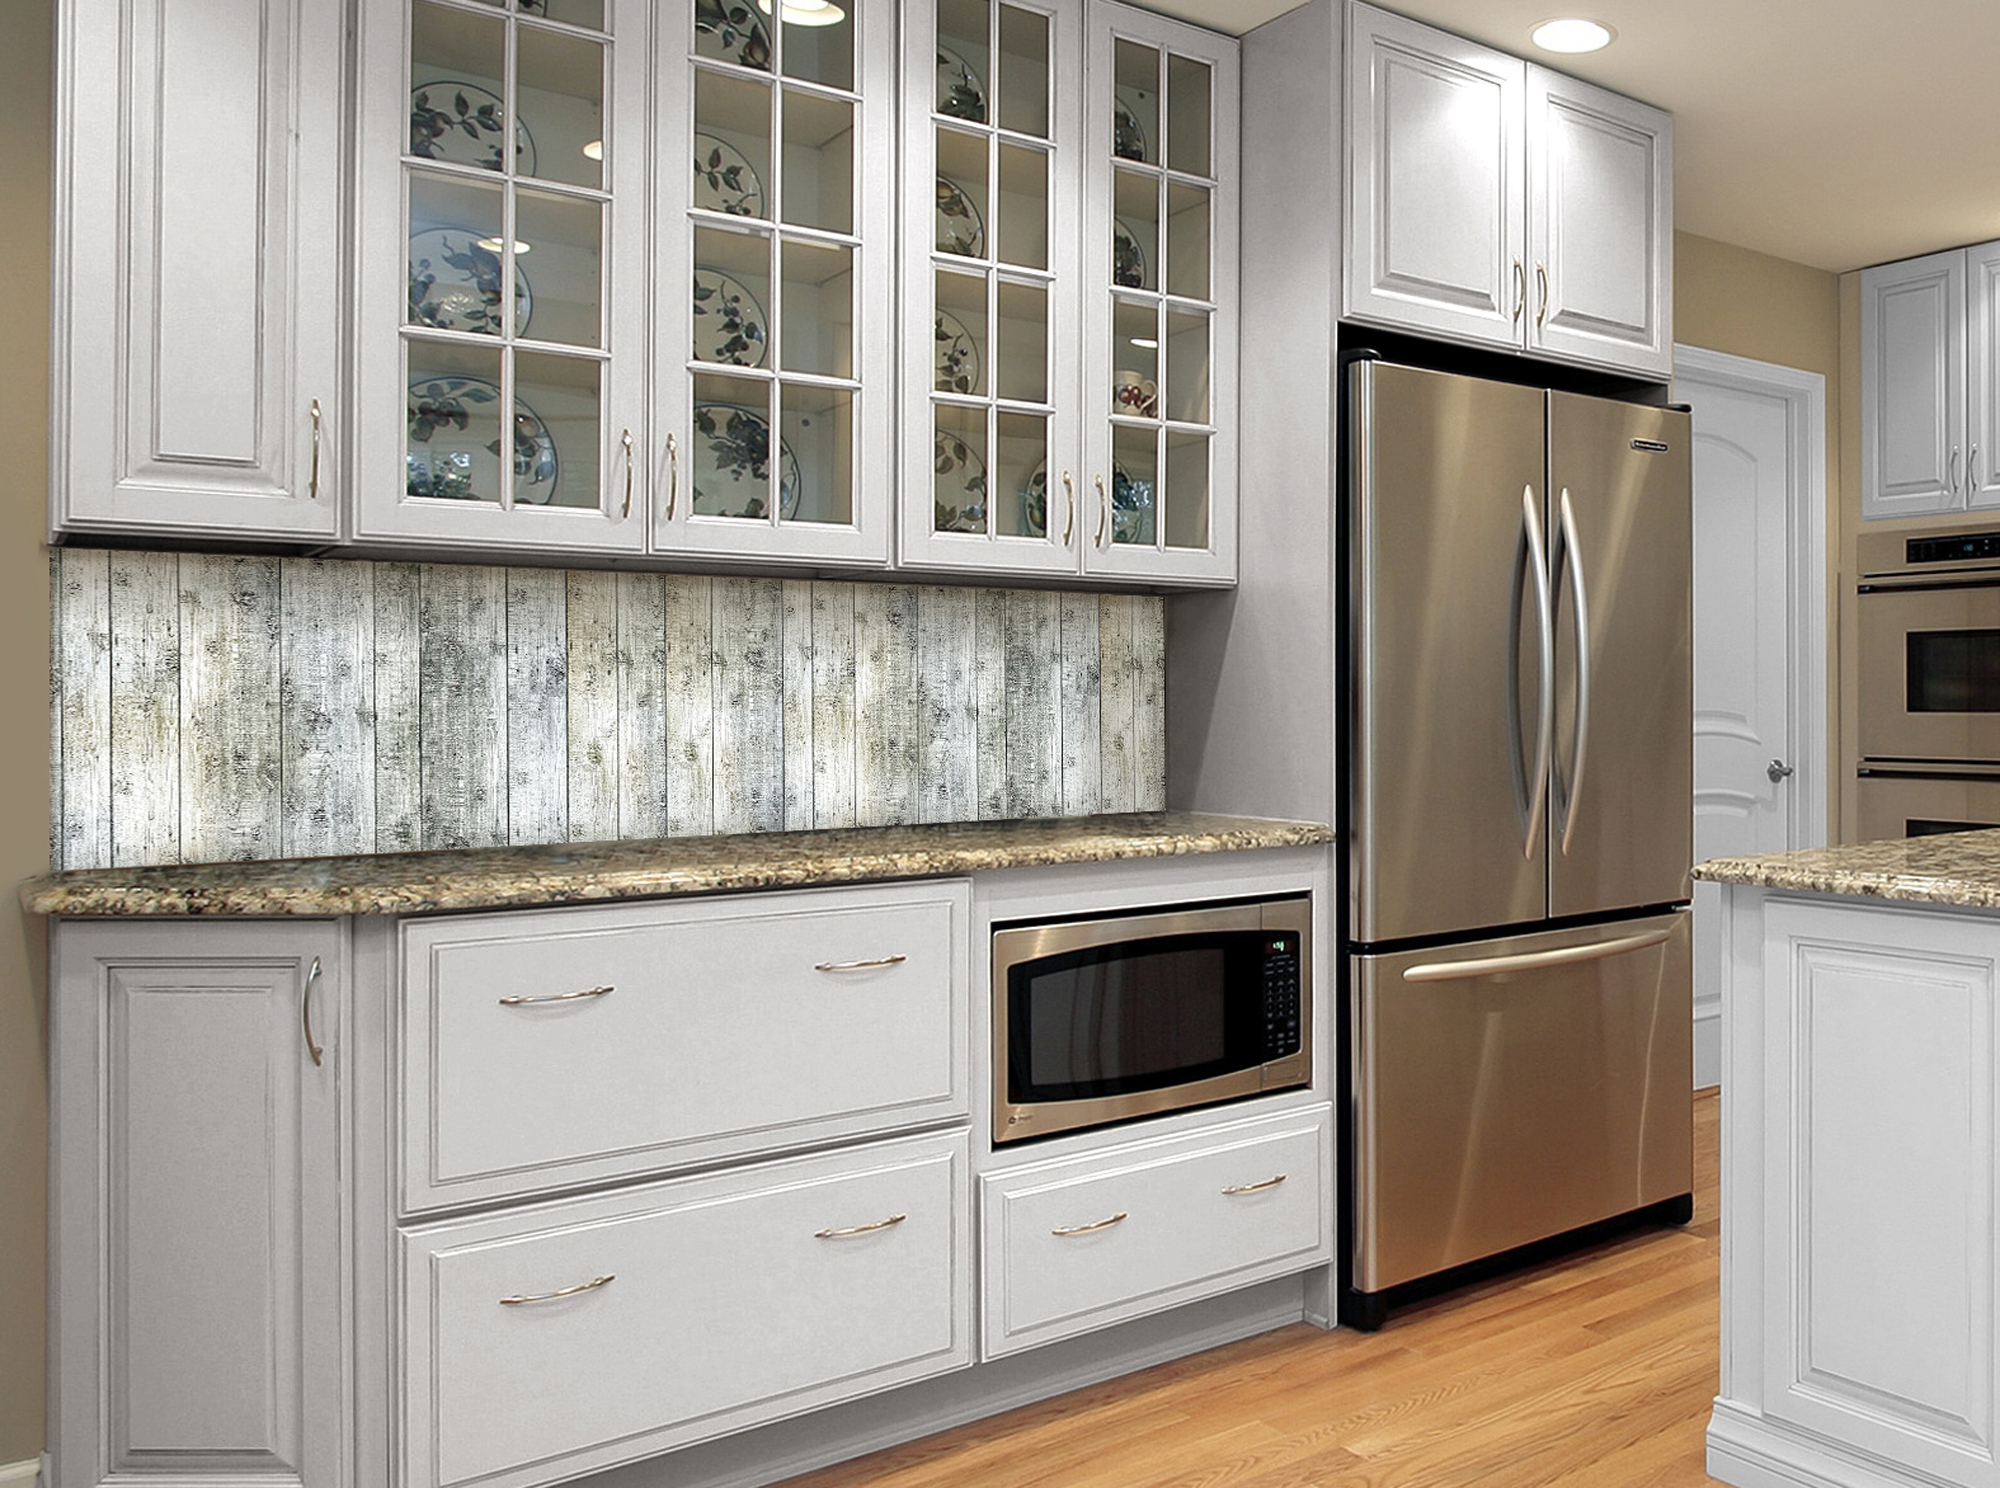 Kitchen with light colored cabinetry